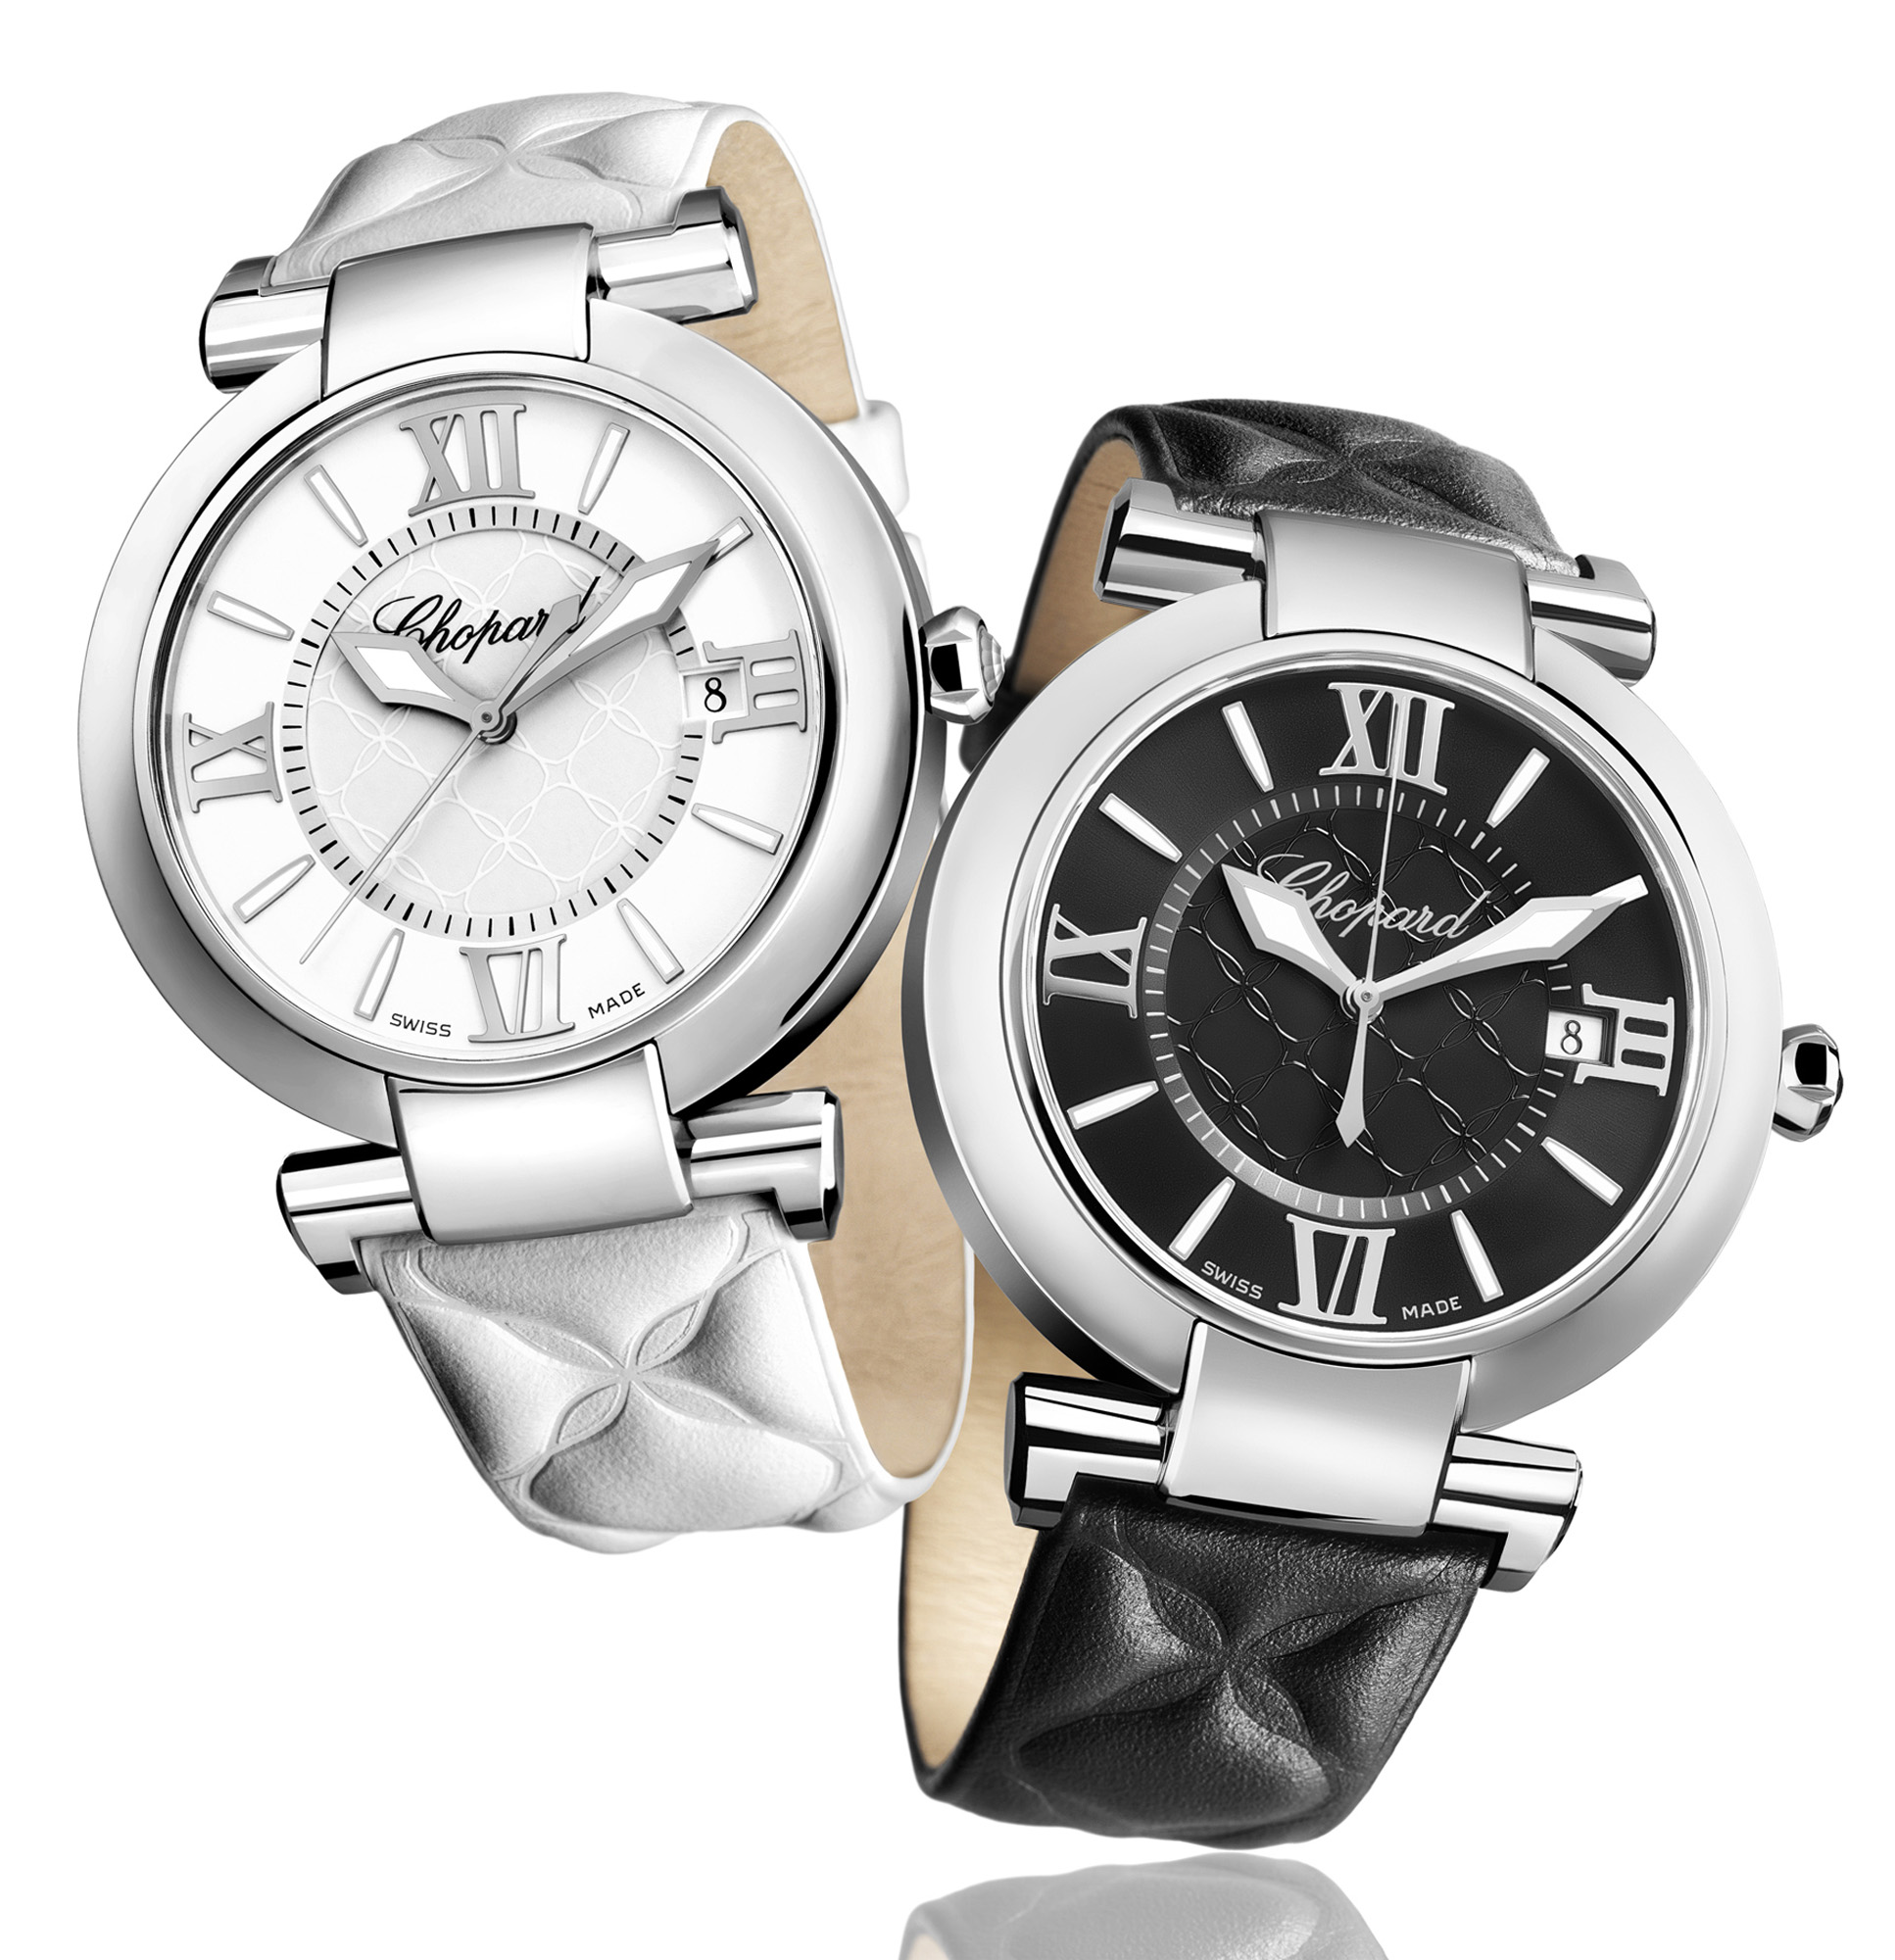 Chopard Imperiale Collection Baselworld 2014